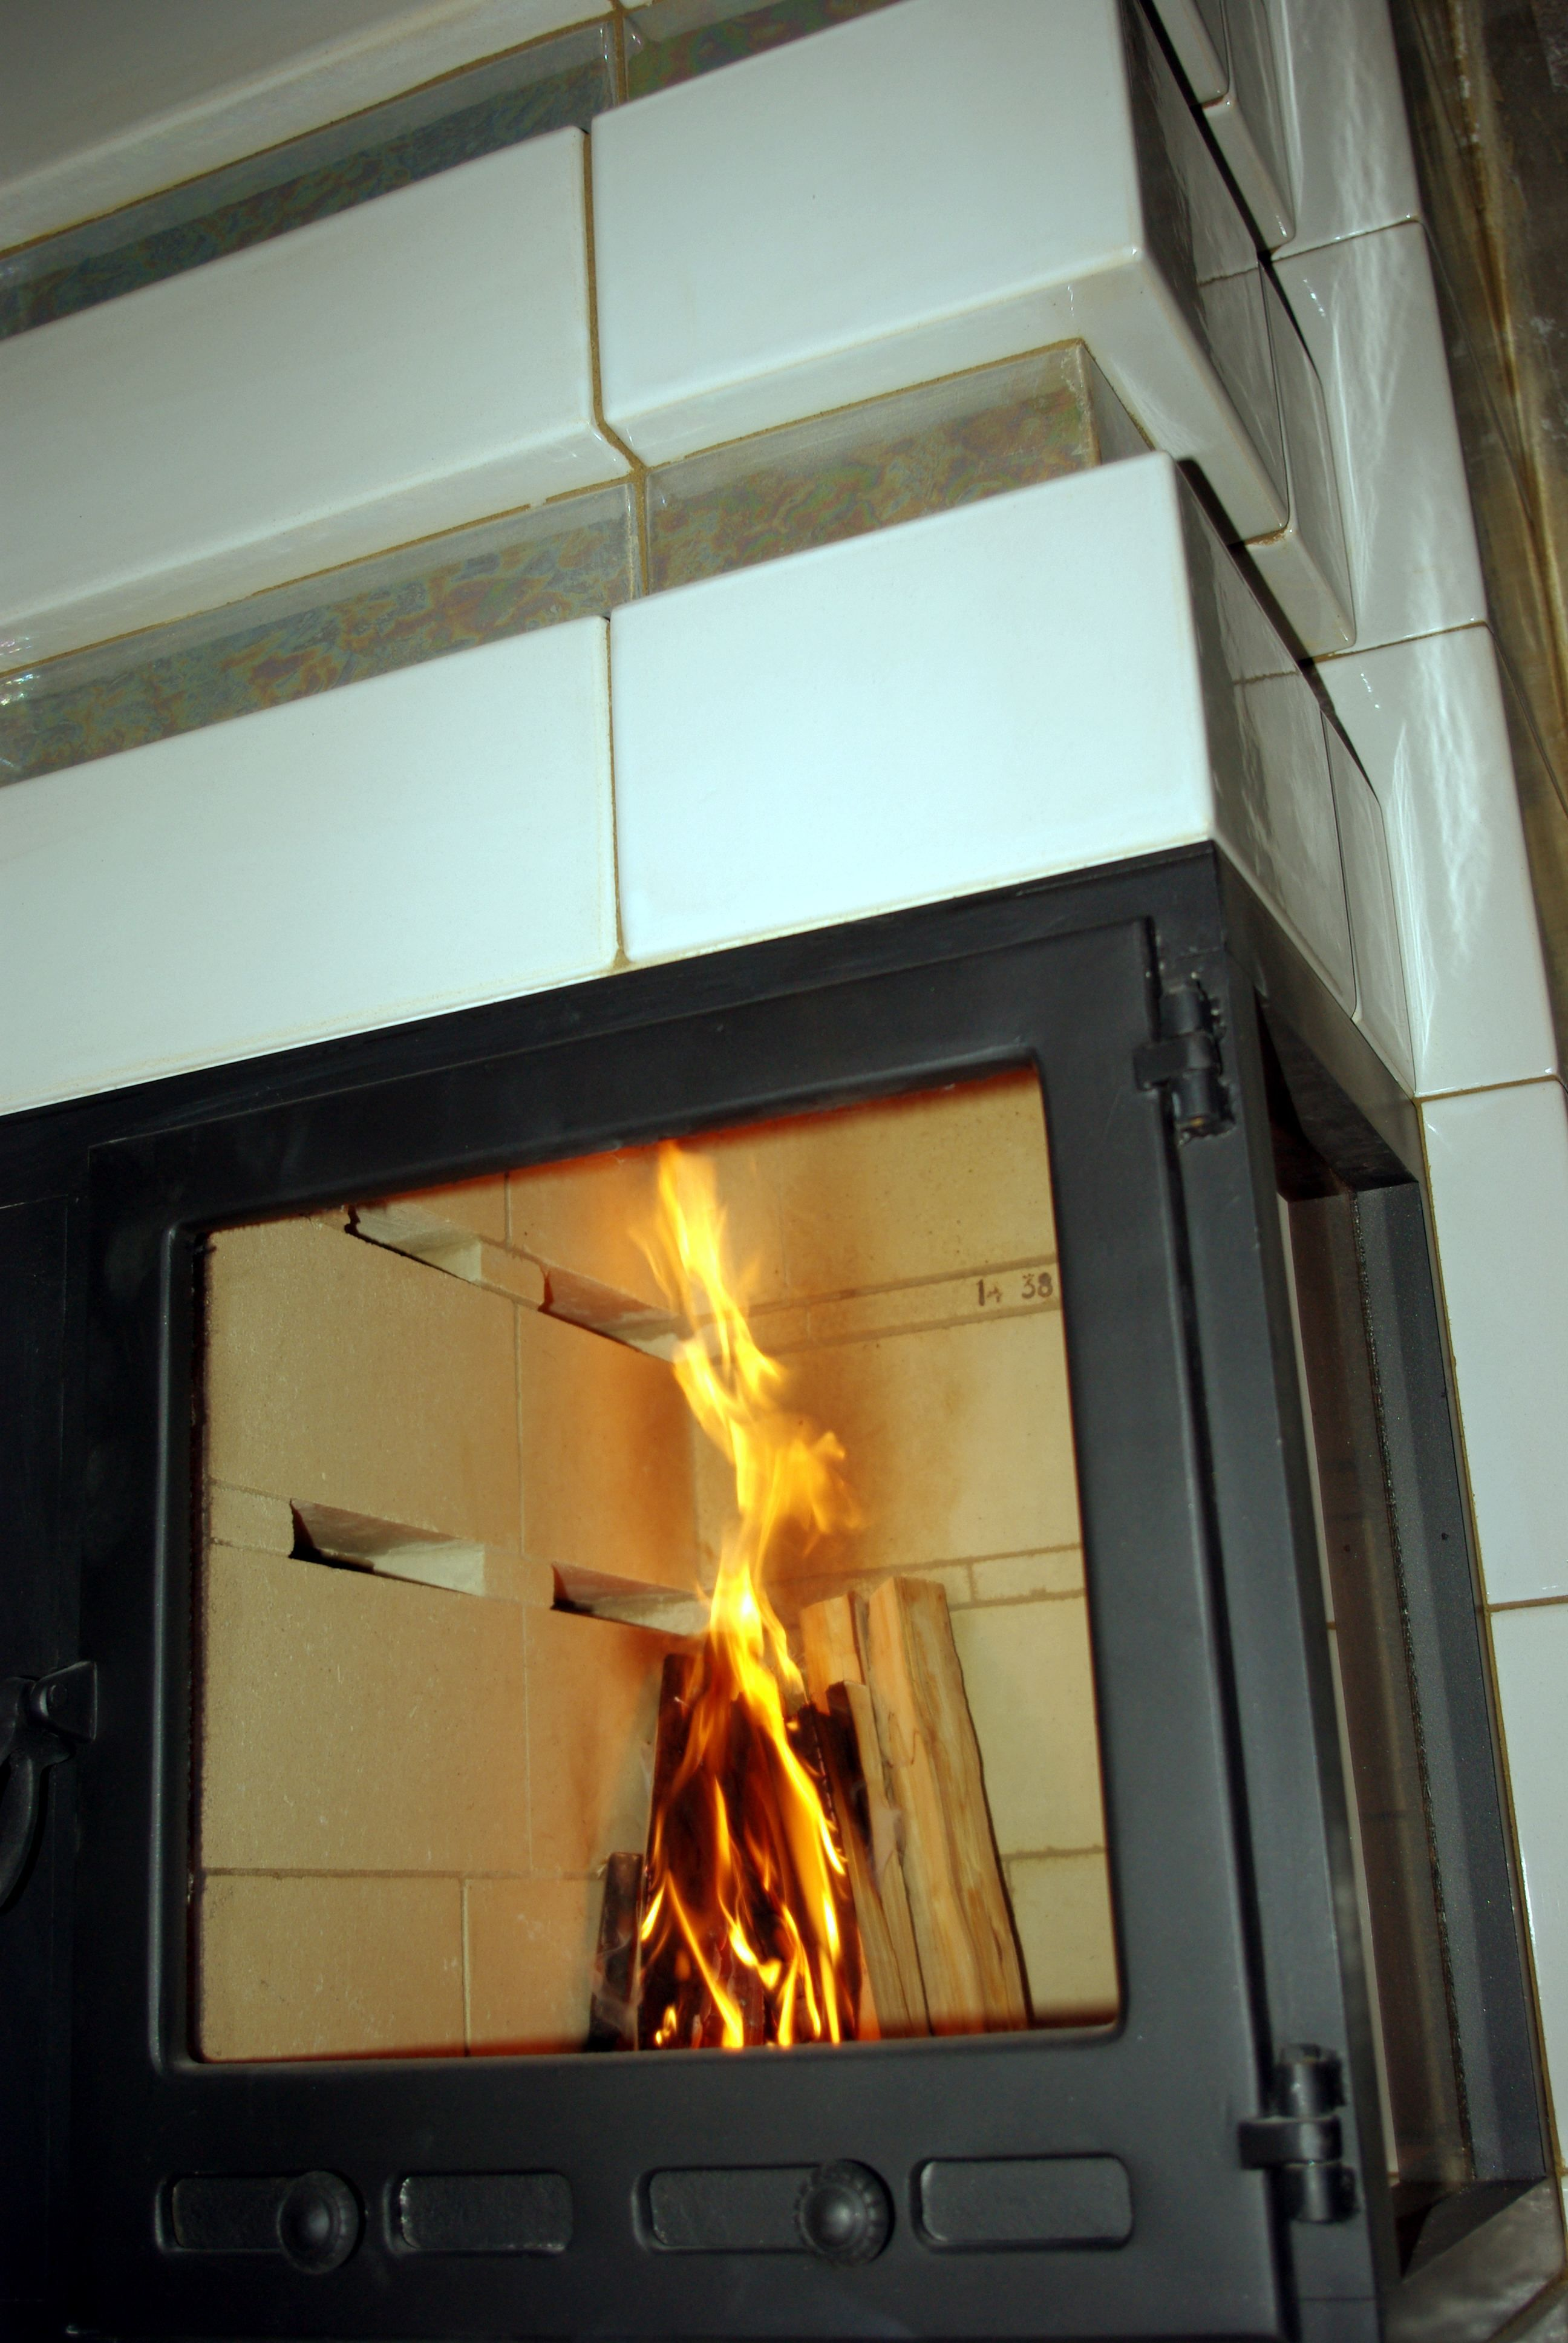 Stove Fireplace, Woodburning, Stoves, Fireplaces, Stoves Cookers, Fire Places, Range,